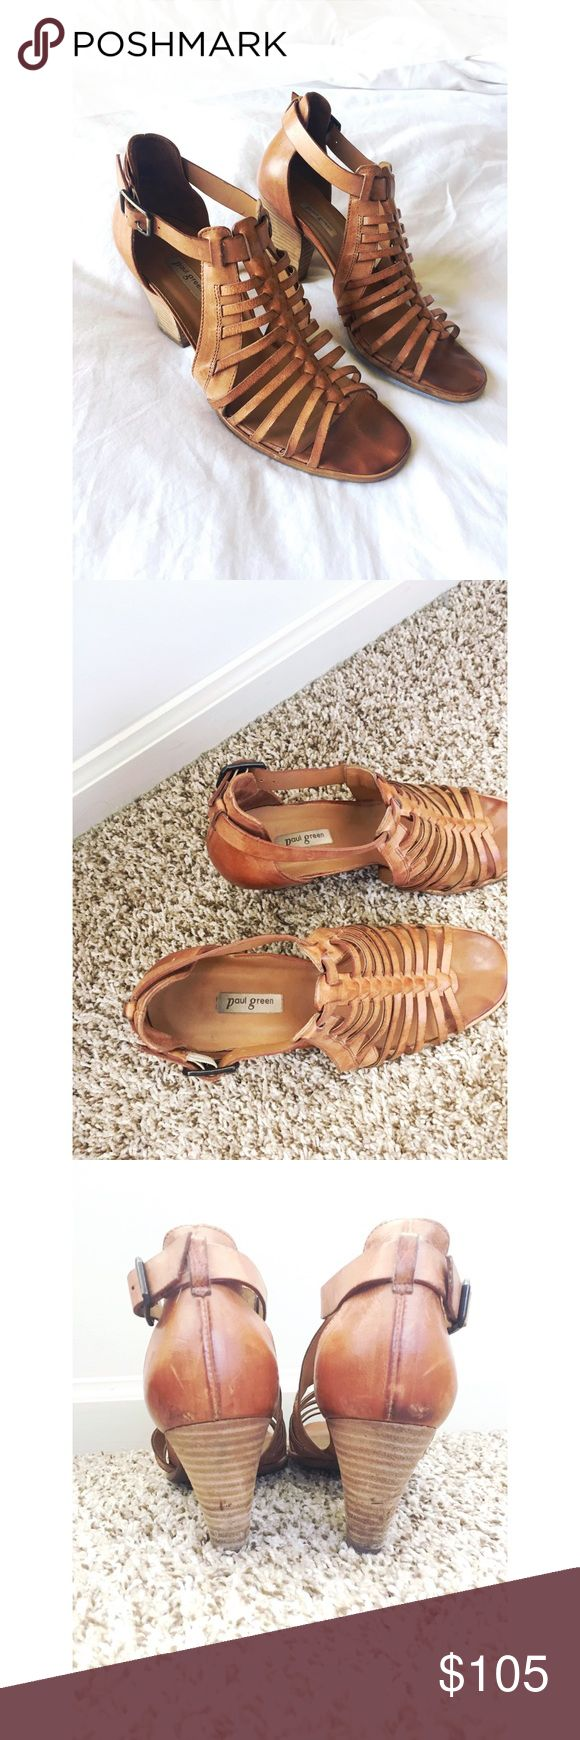 Paul Green Christy Sandals Size 9 Brown Paul Green sandals in good condition! Perfect go to sandals that match everything. Comfortable and stylish. Paul Green Shoes Sandals